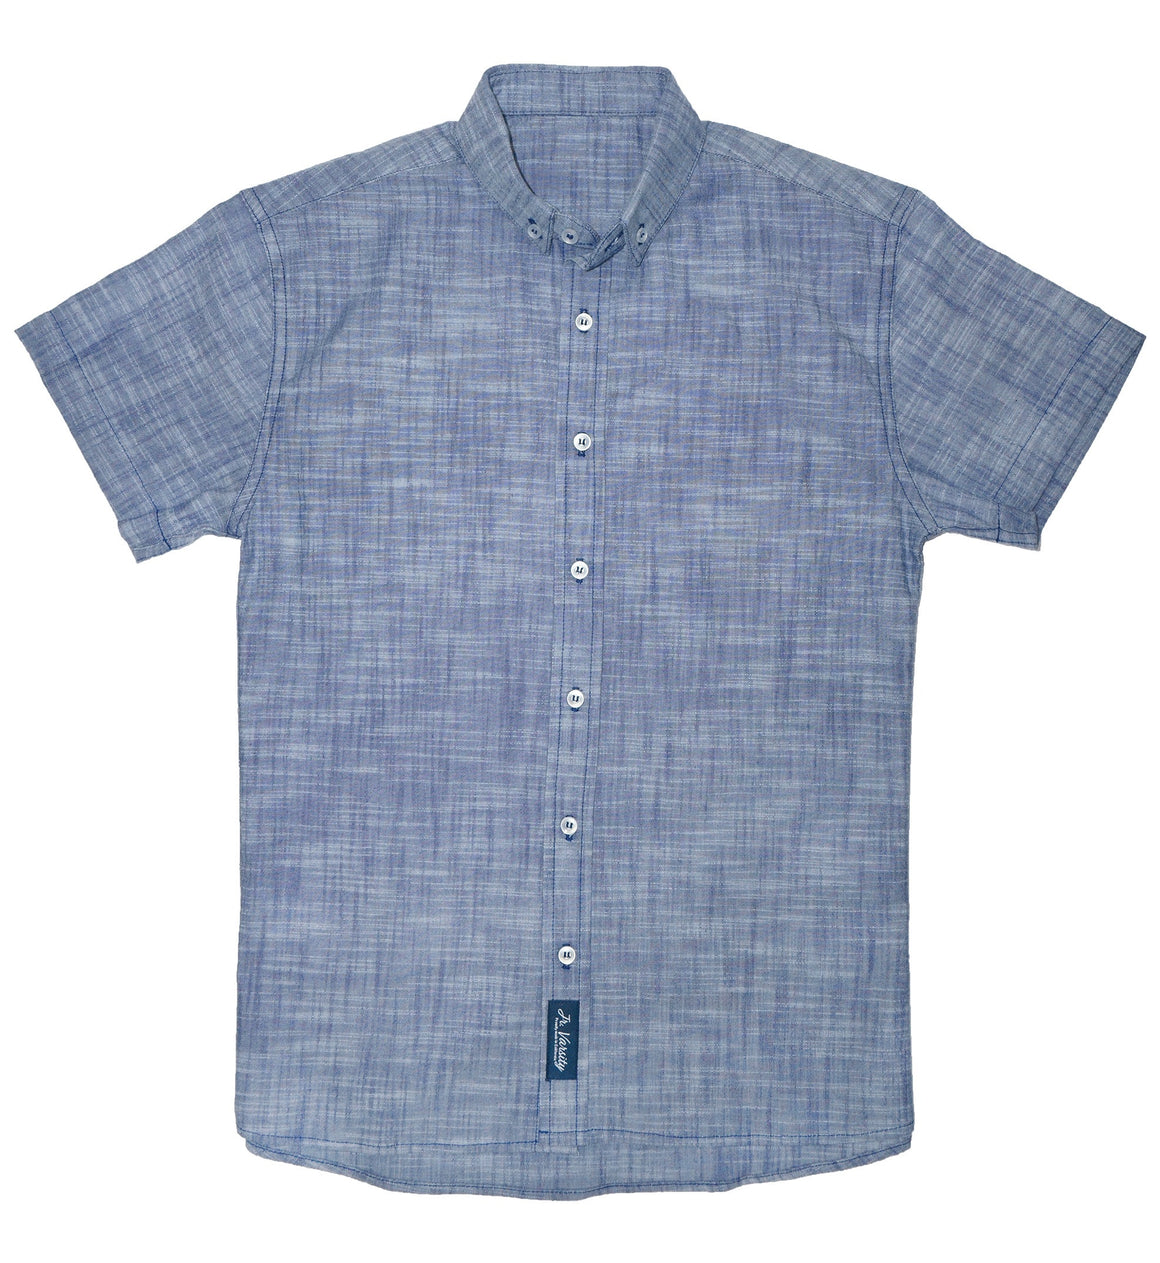 The Pacific Beach Short-sleeve Shirt